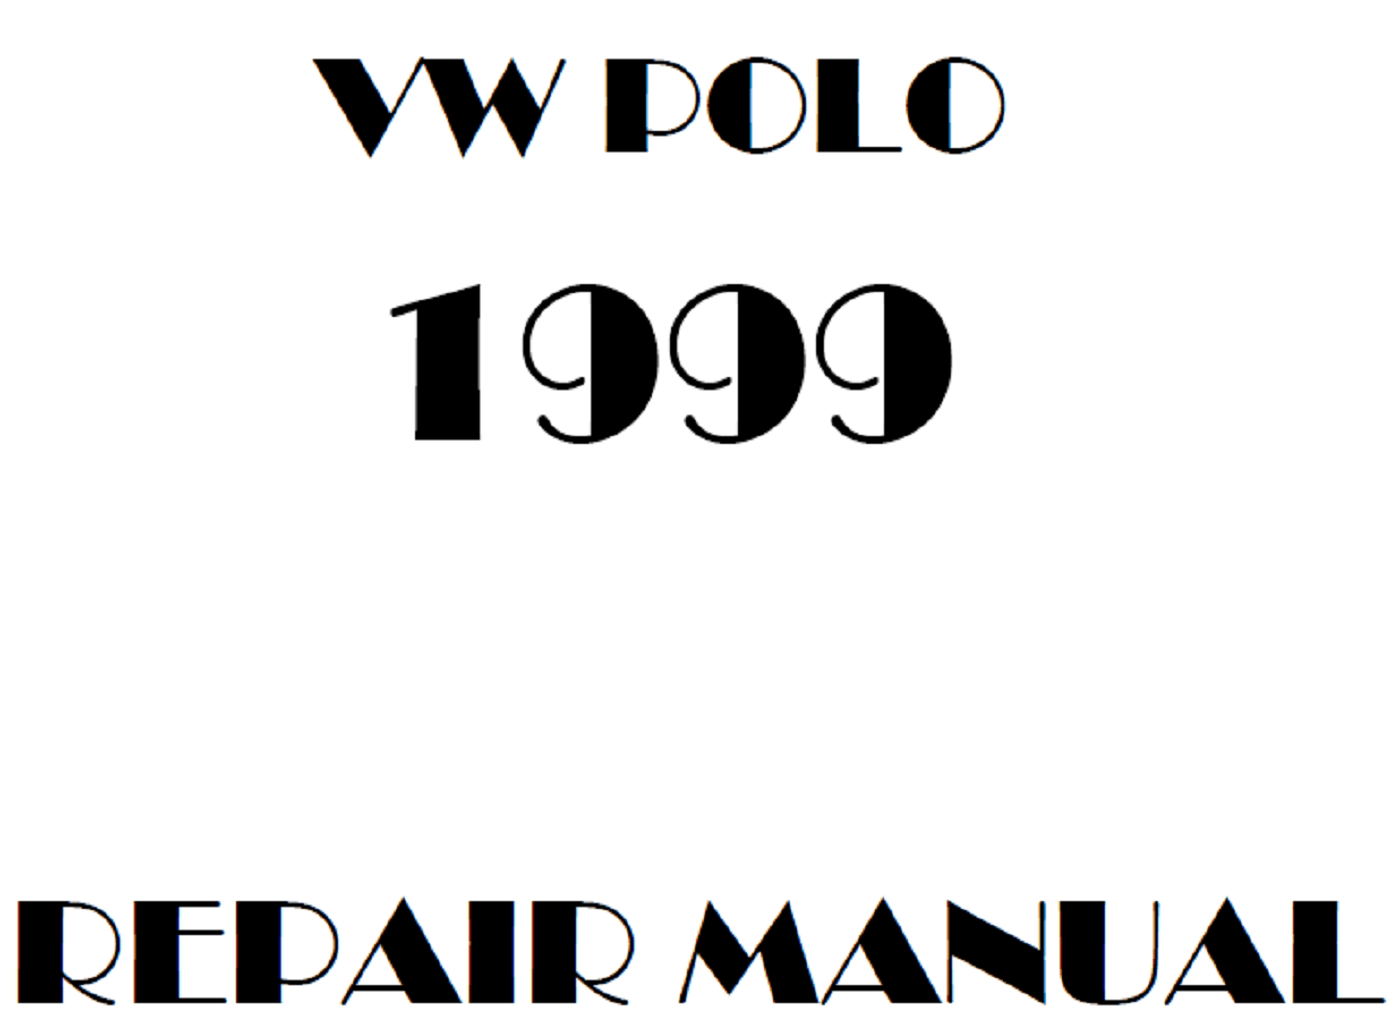 1999 Volkswagen Polo repair manual